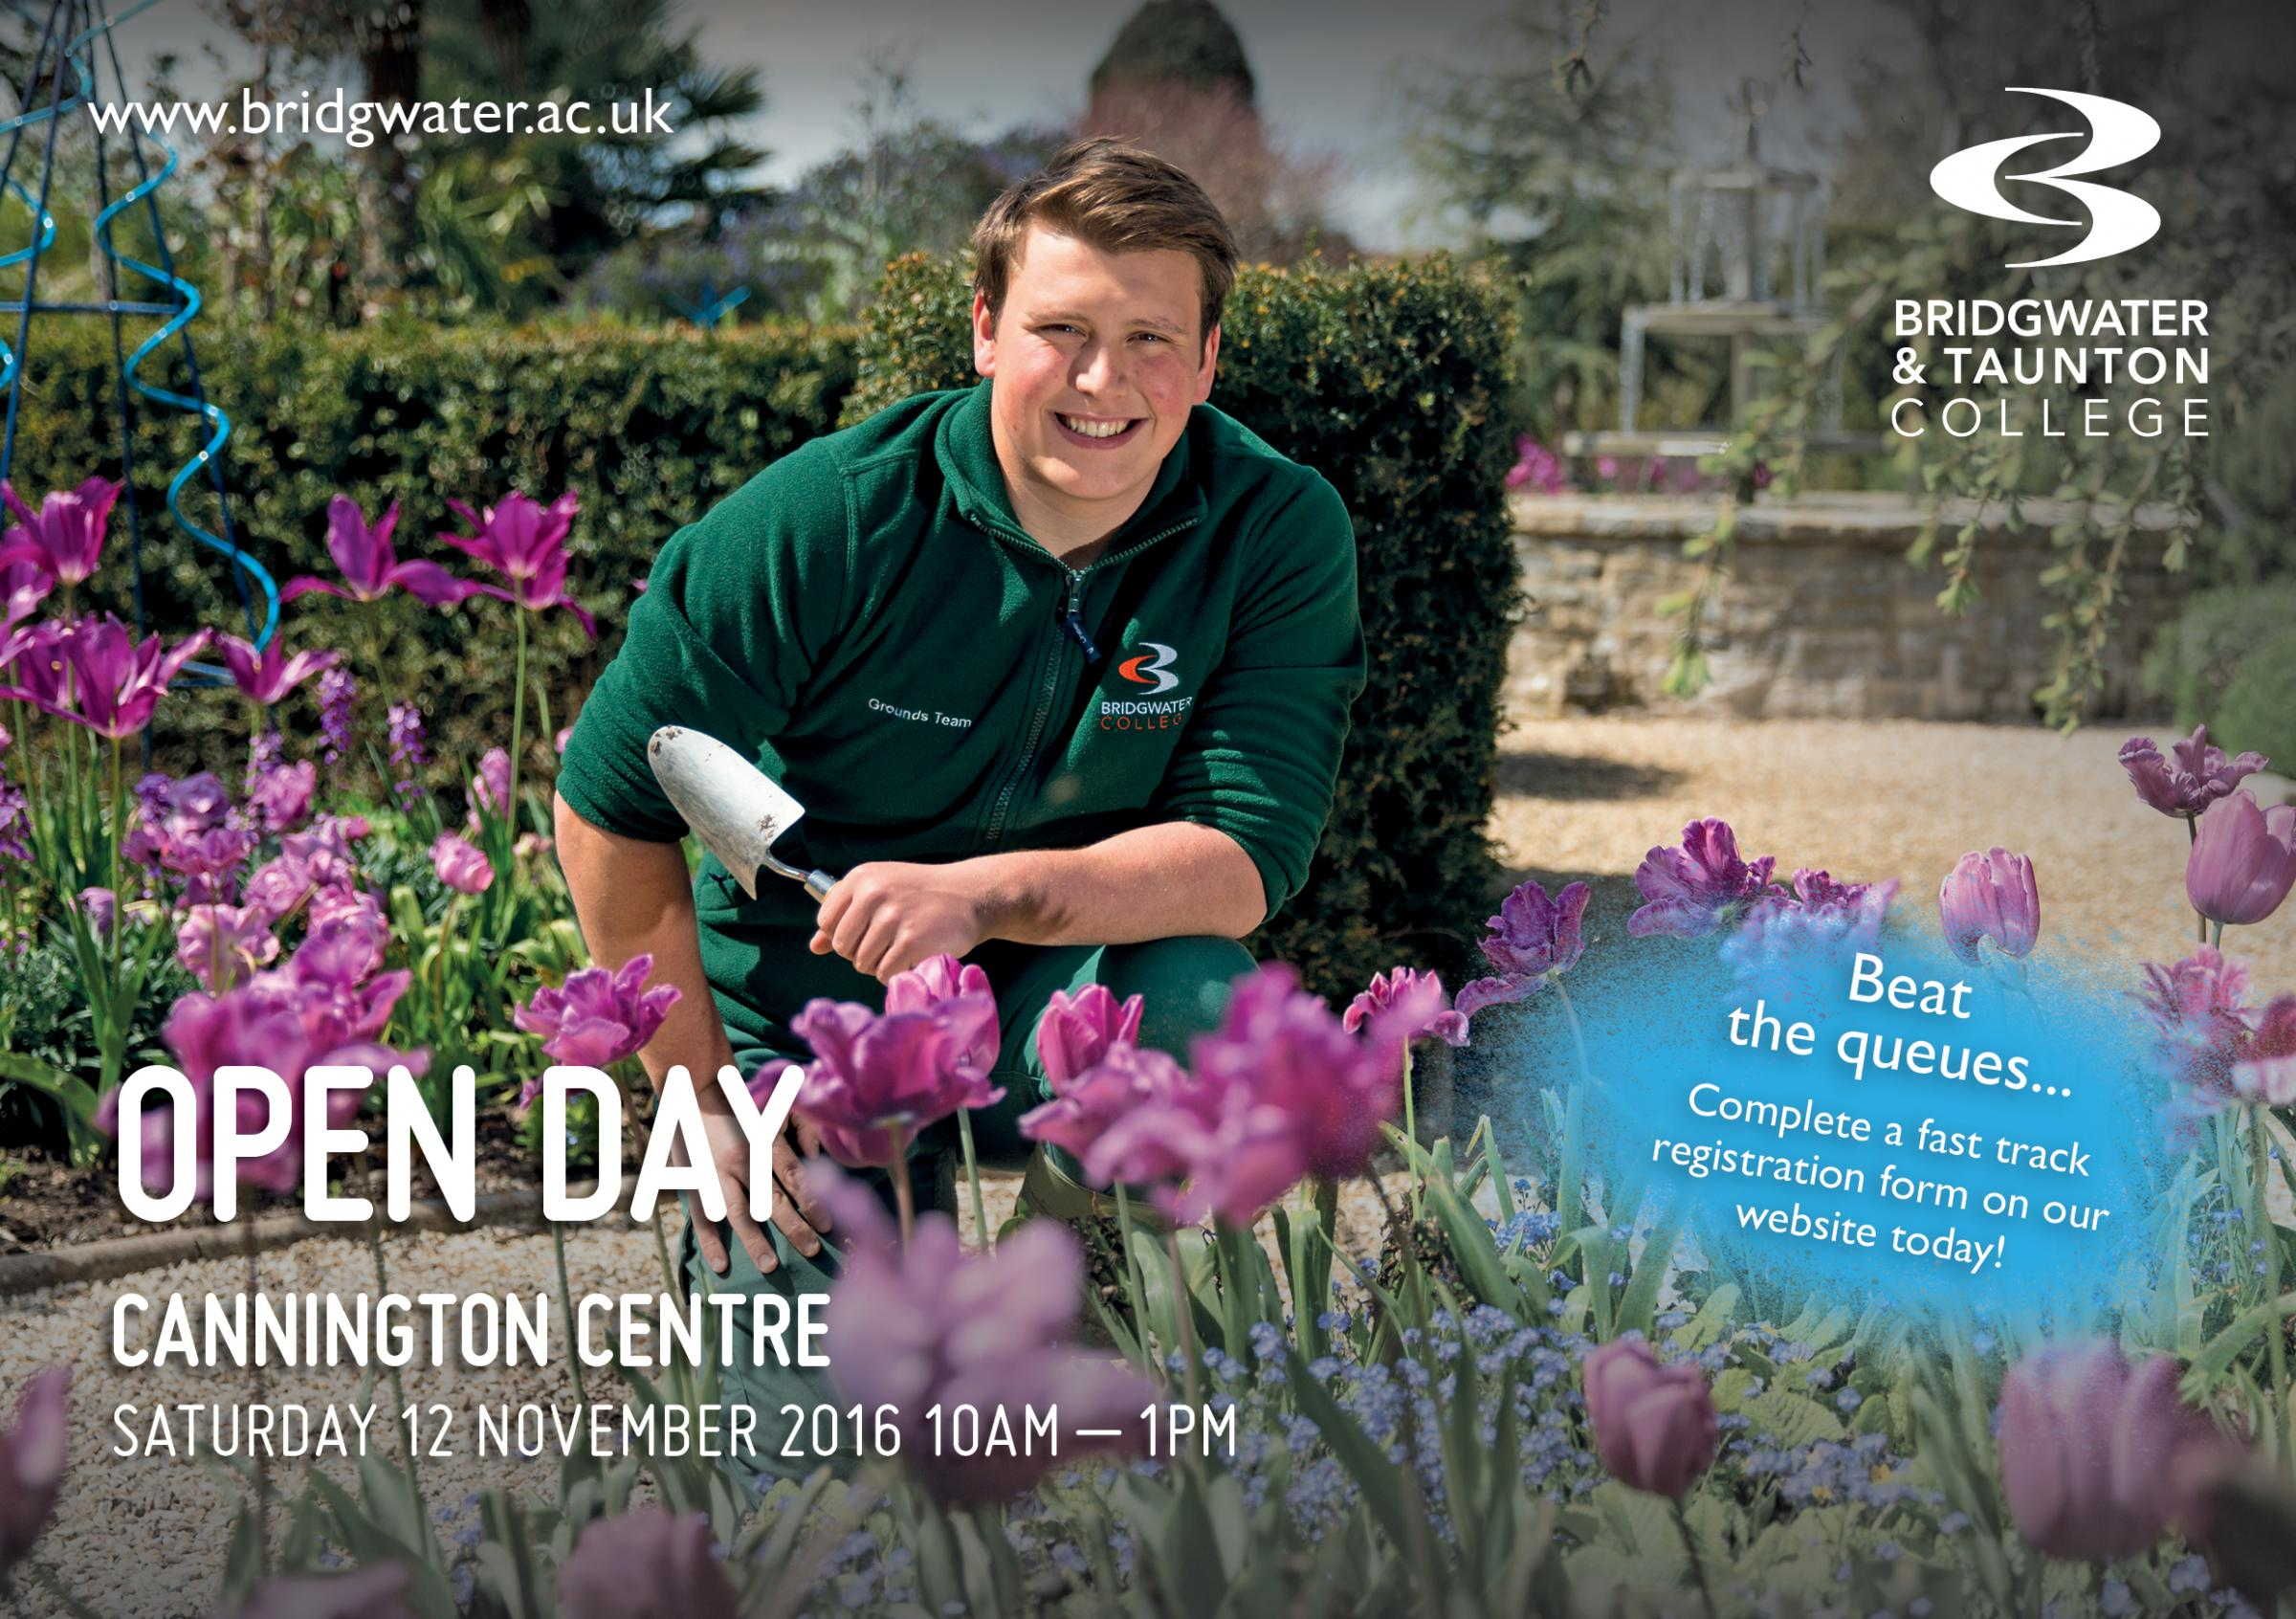 Bridgwater and Taunton College, Cannington Centre Open Day